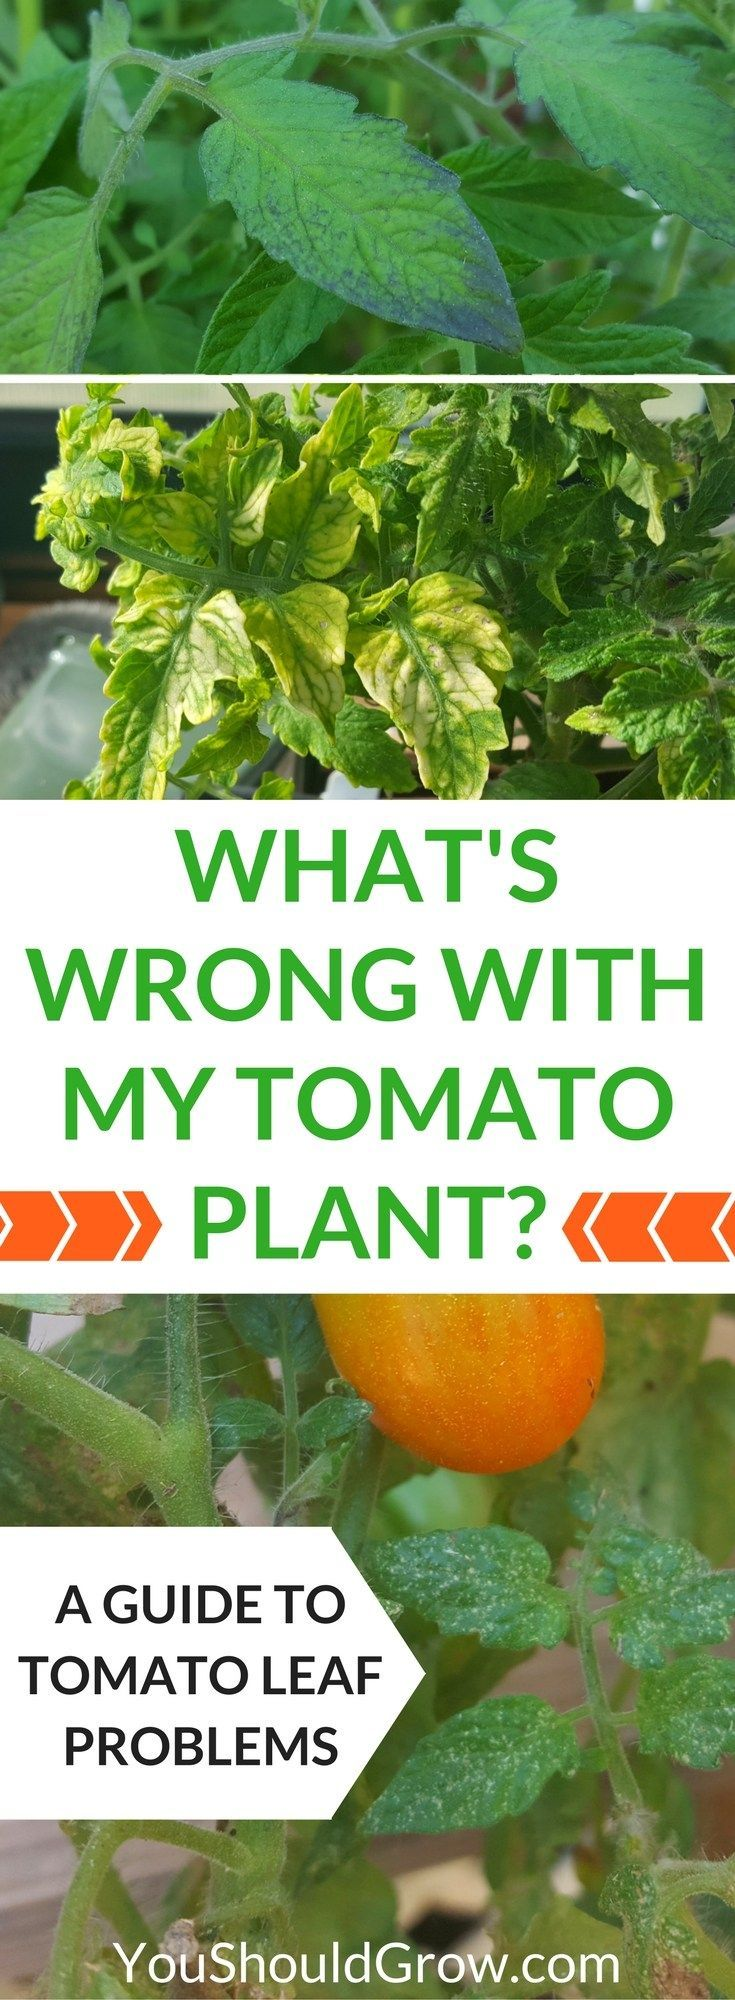 How to identify tomato leaf problems. The comprehensive guide to yellow, misshapen, spotted and wilted tomato leaves.